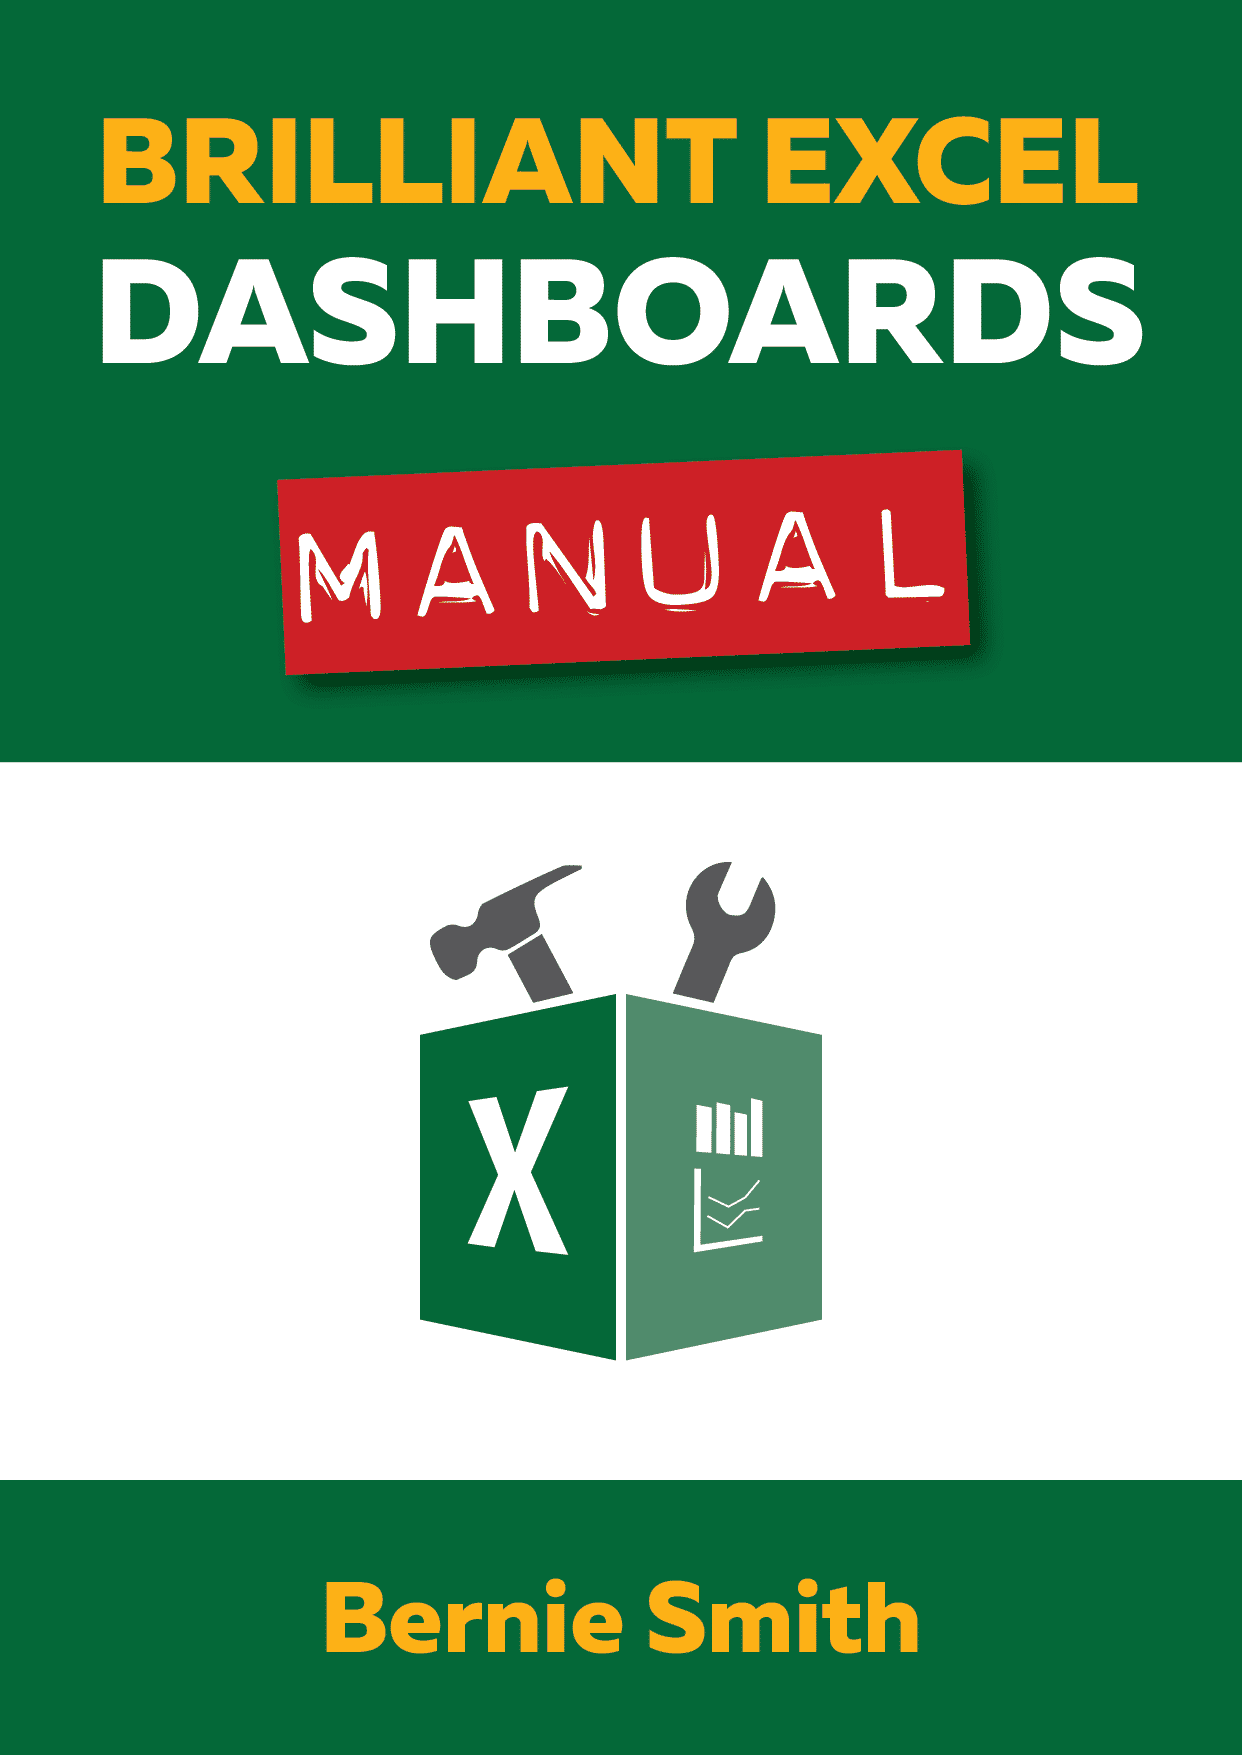 Brilliant Excel Dashboards Manual